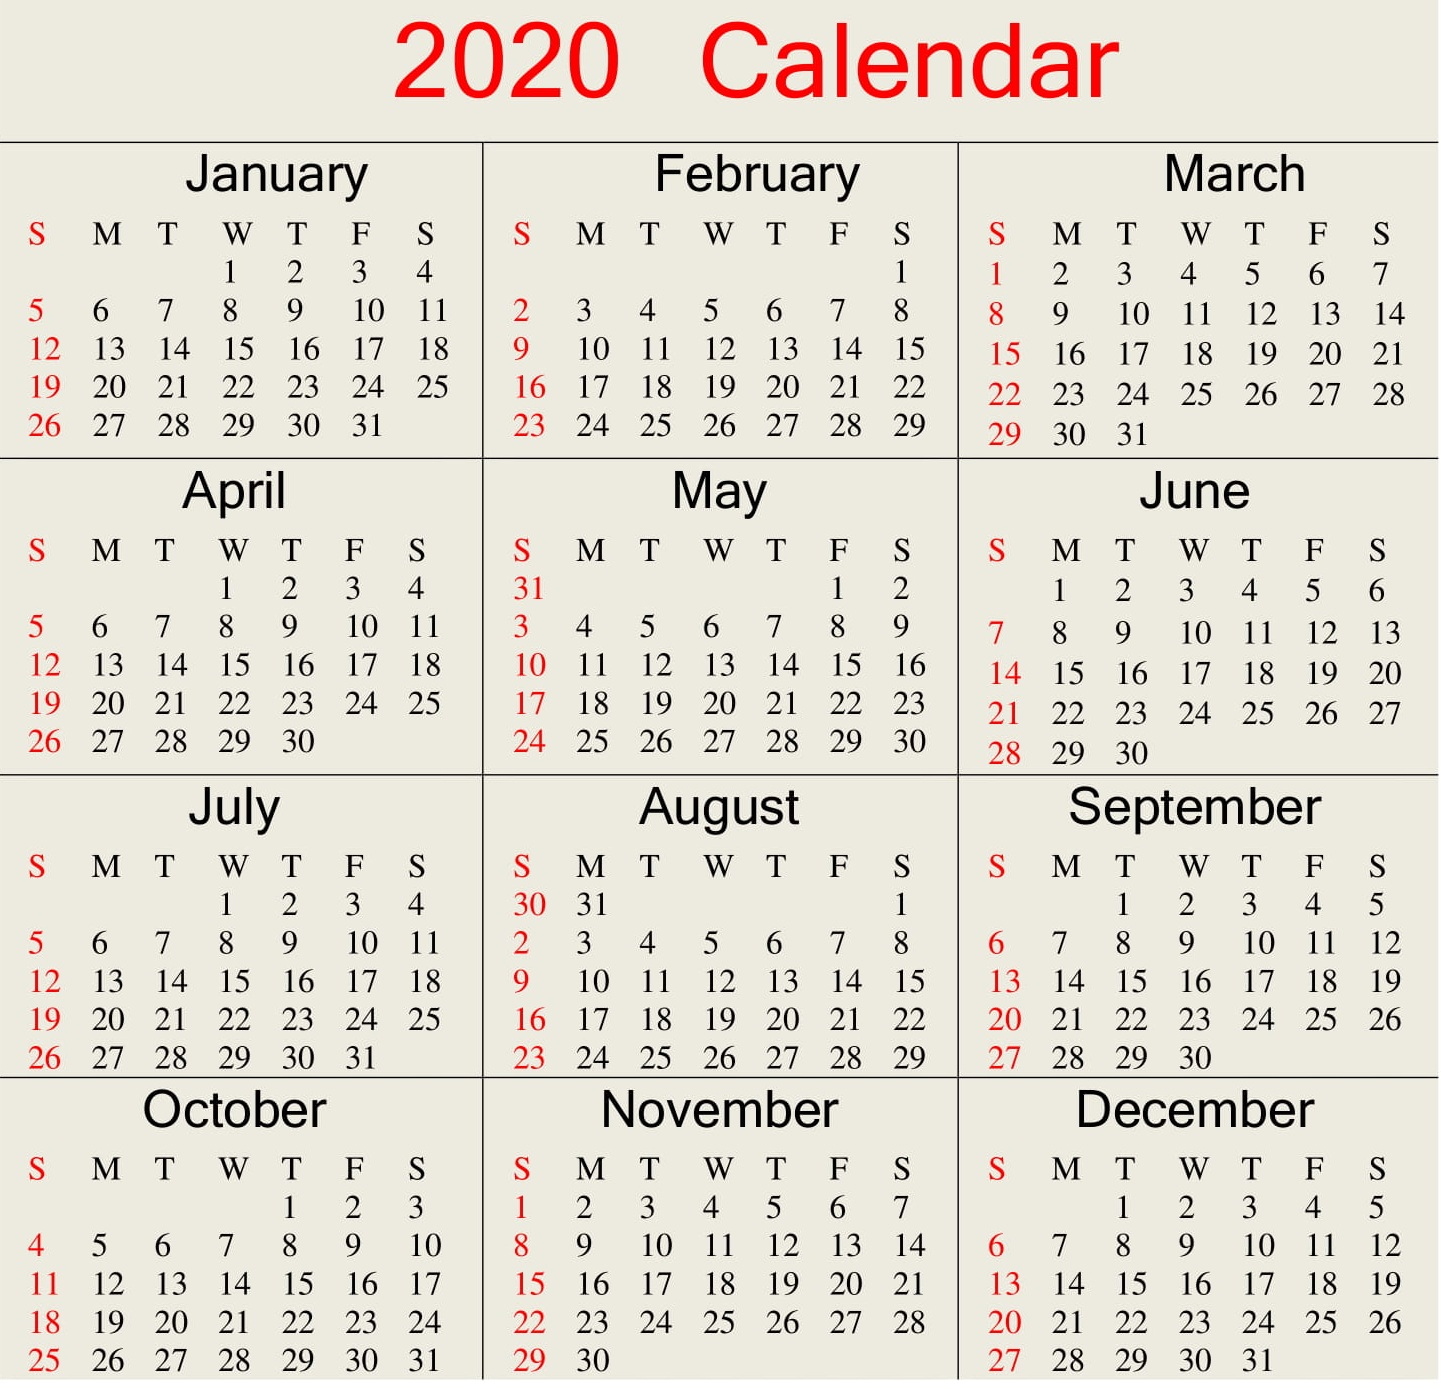 Printable 2020 Calendar Word Document  Latest Printable for 2020 Julian Calendar